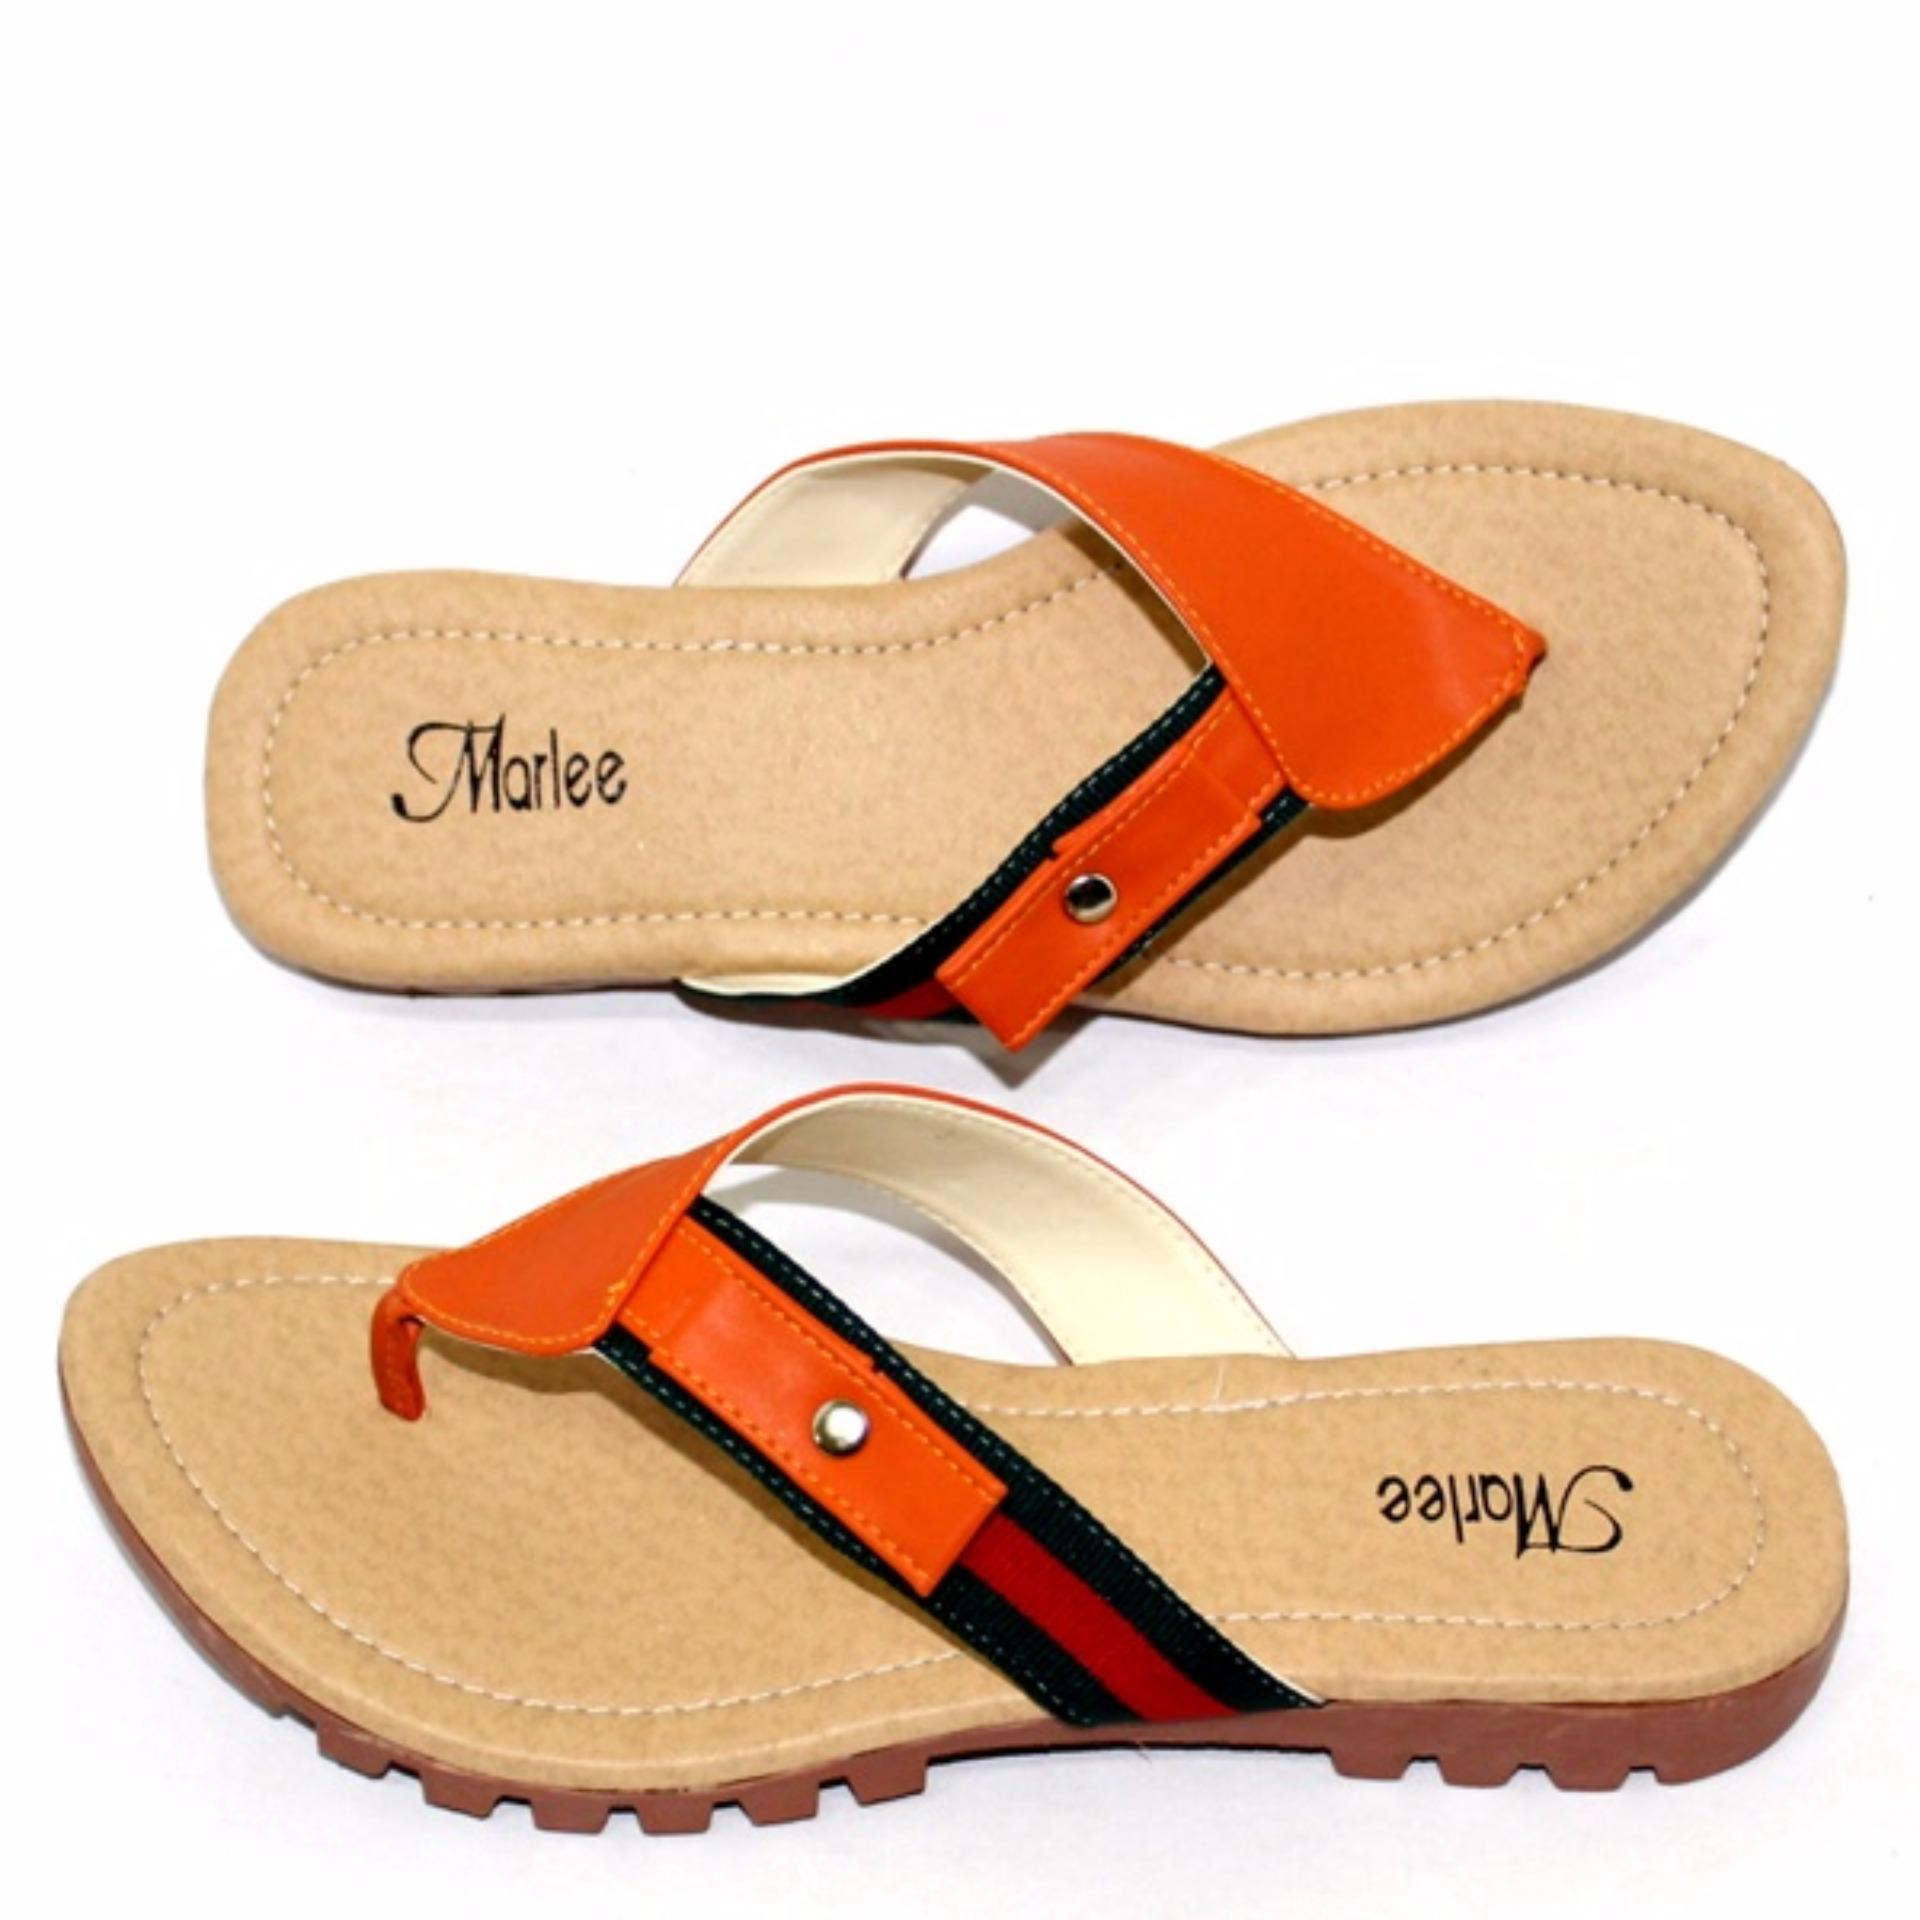 Women Marlee Sandal Wanita Flatbed Formal Rc 03 Flip Flat Jjt 09 Orange